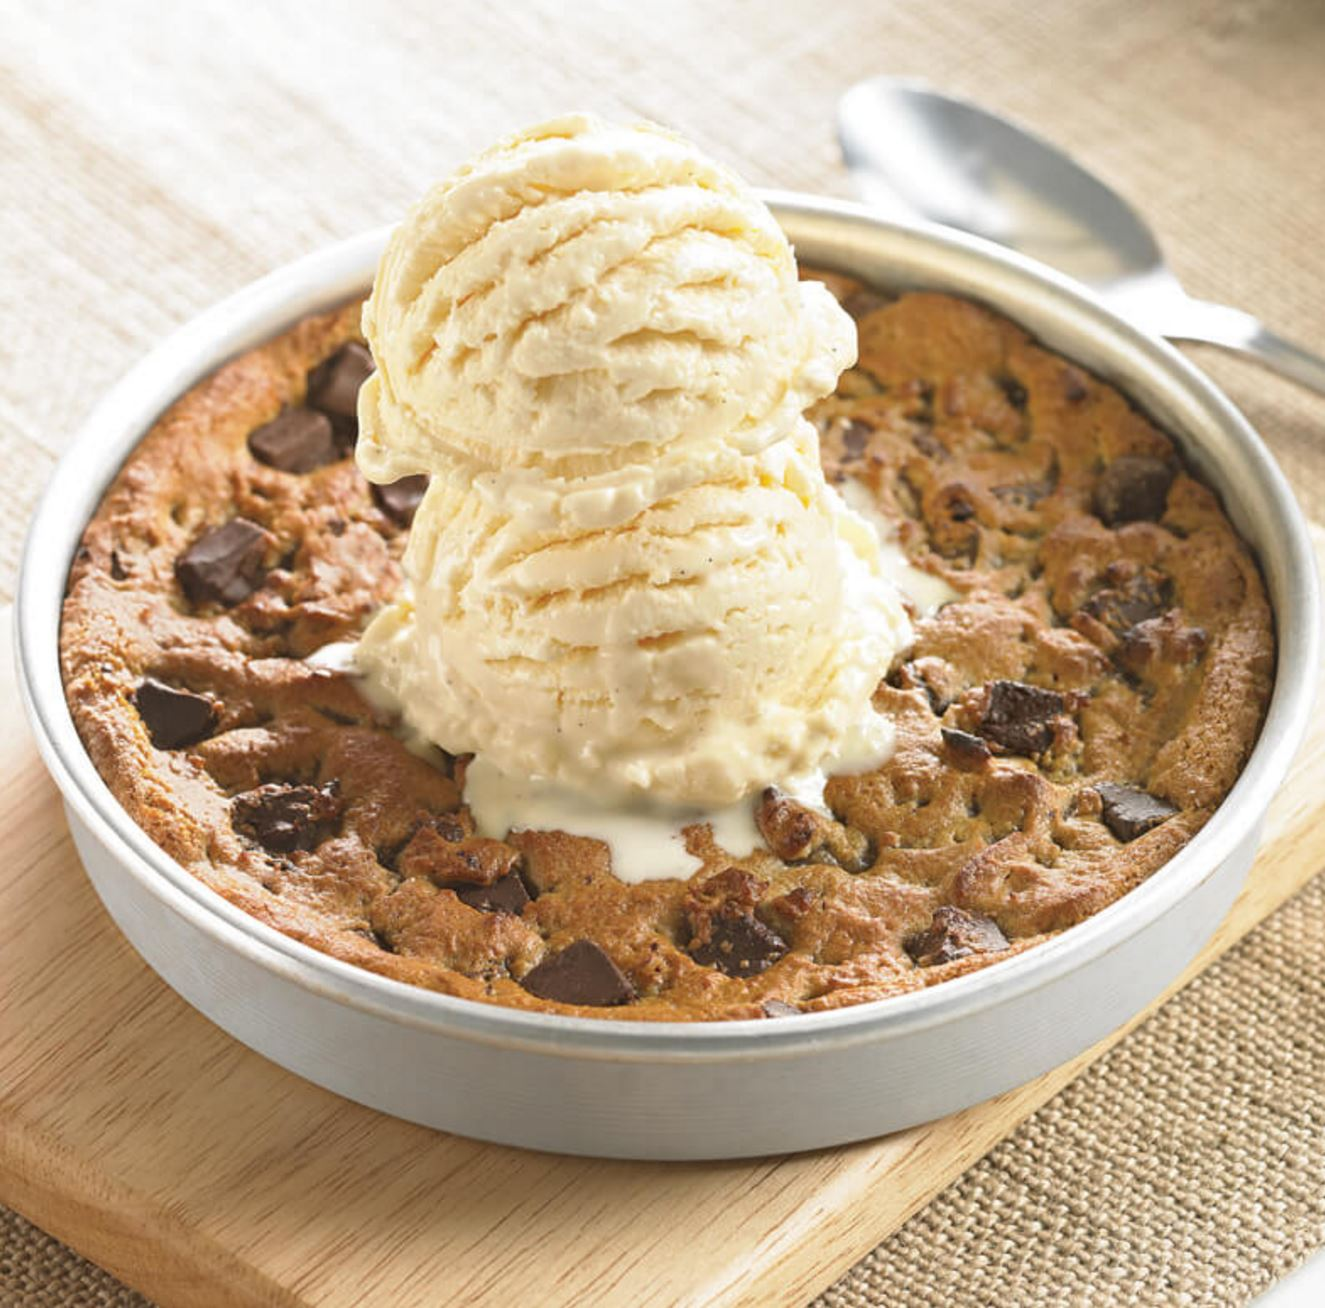 Every Tuesday | Those Freshly Baked Ooey Gooey Pizookies From BJ's Are Only $3!